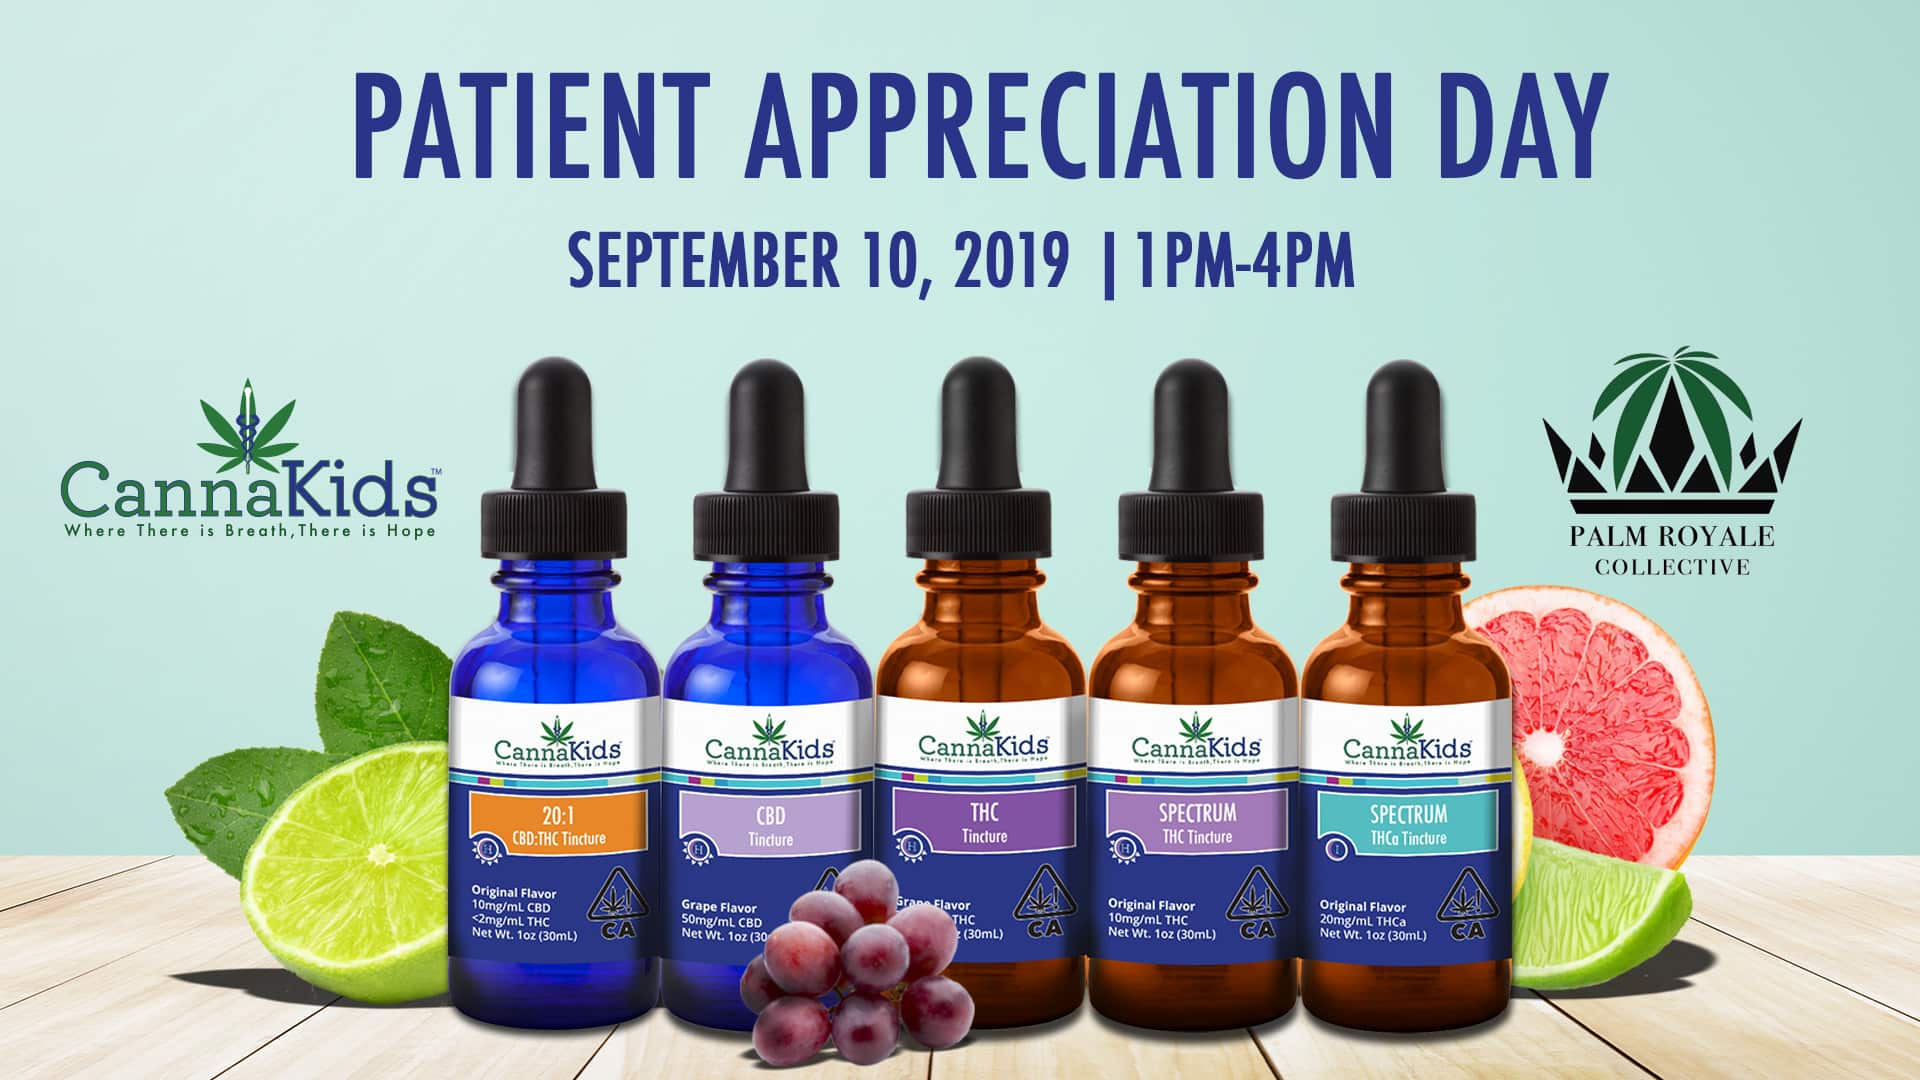 Patient Appreciation Day at Royal Palm Collective